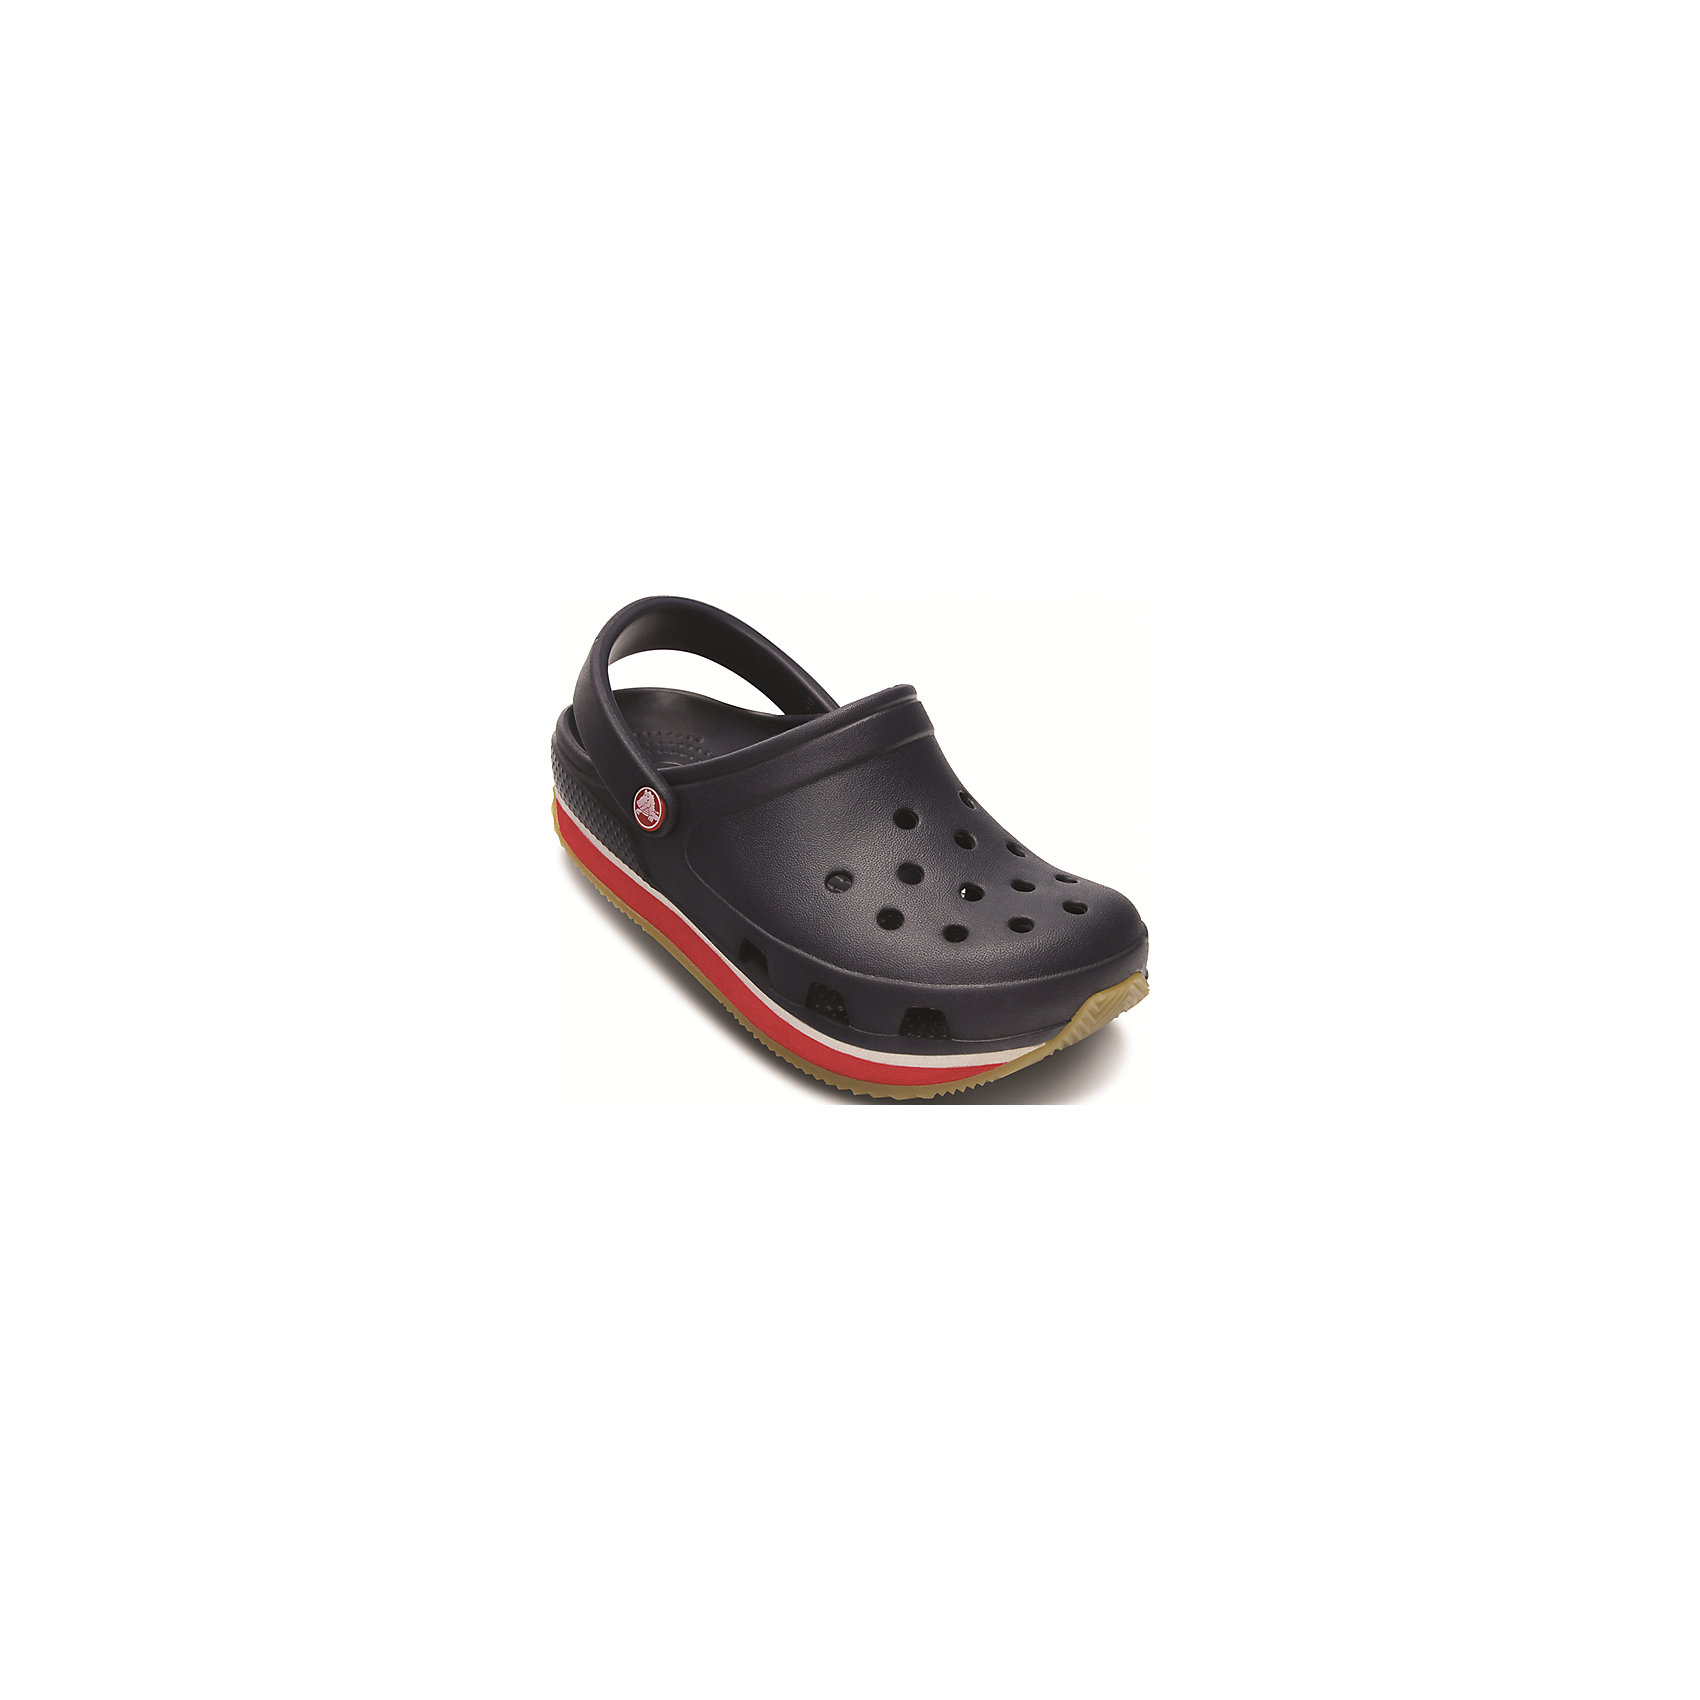 Сабо Retro Clog Kids для мальчика Crocs